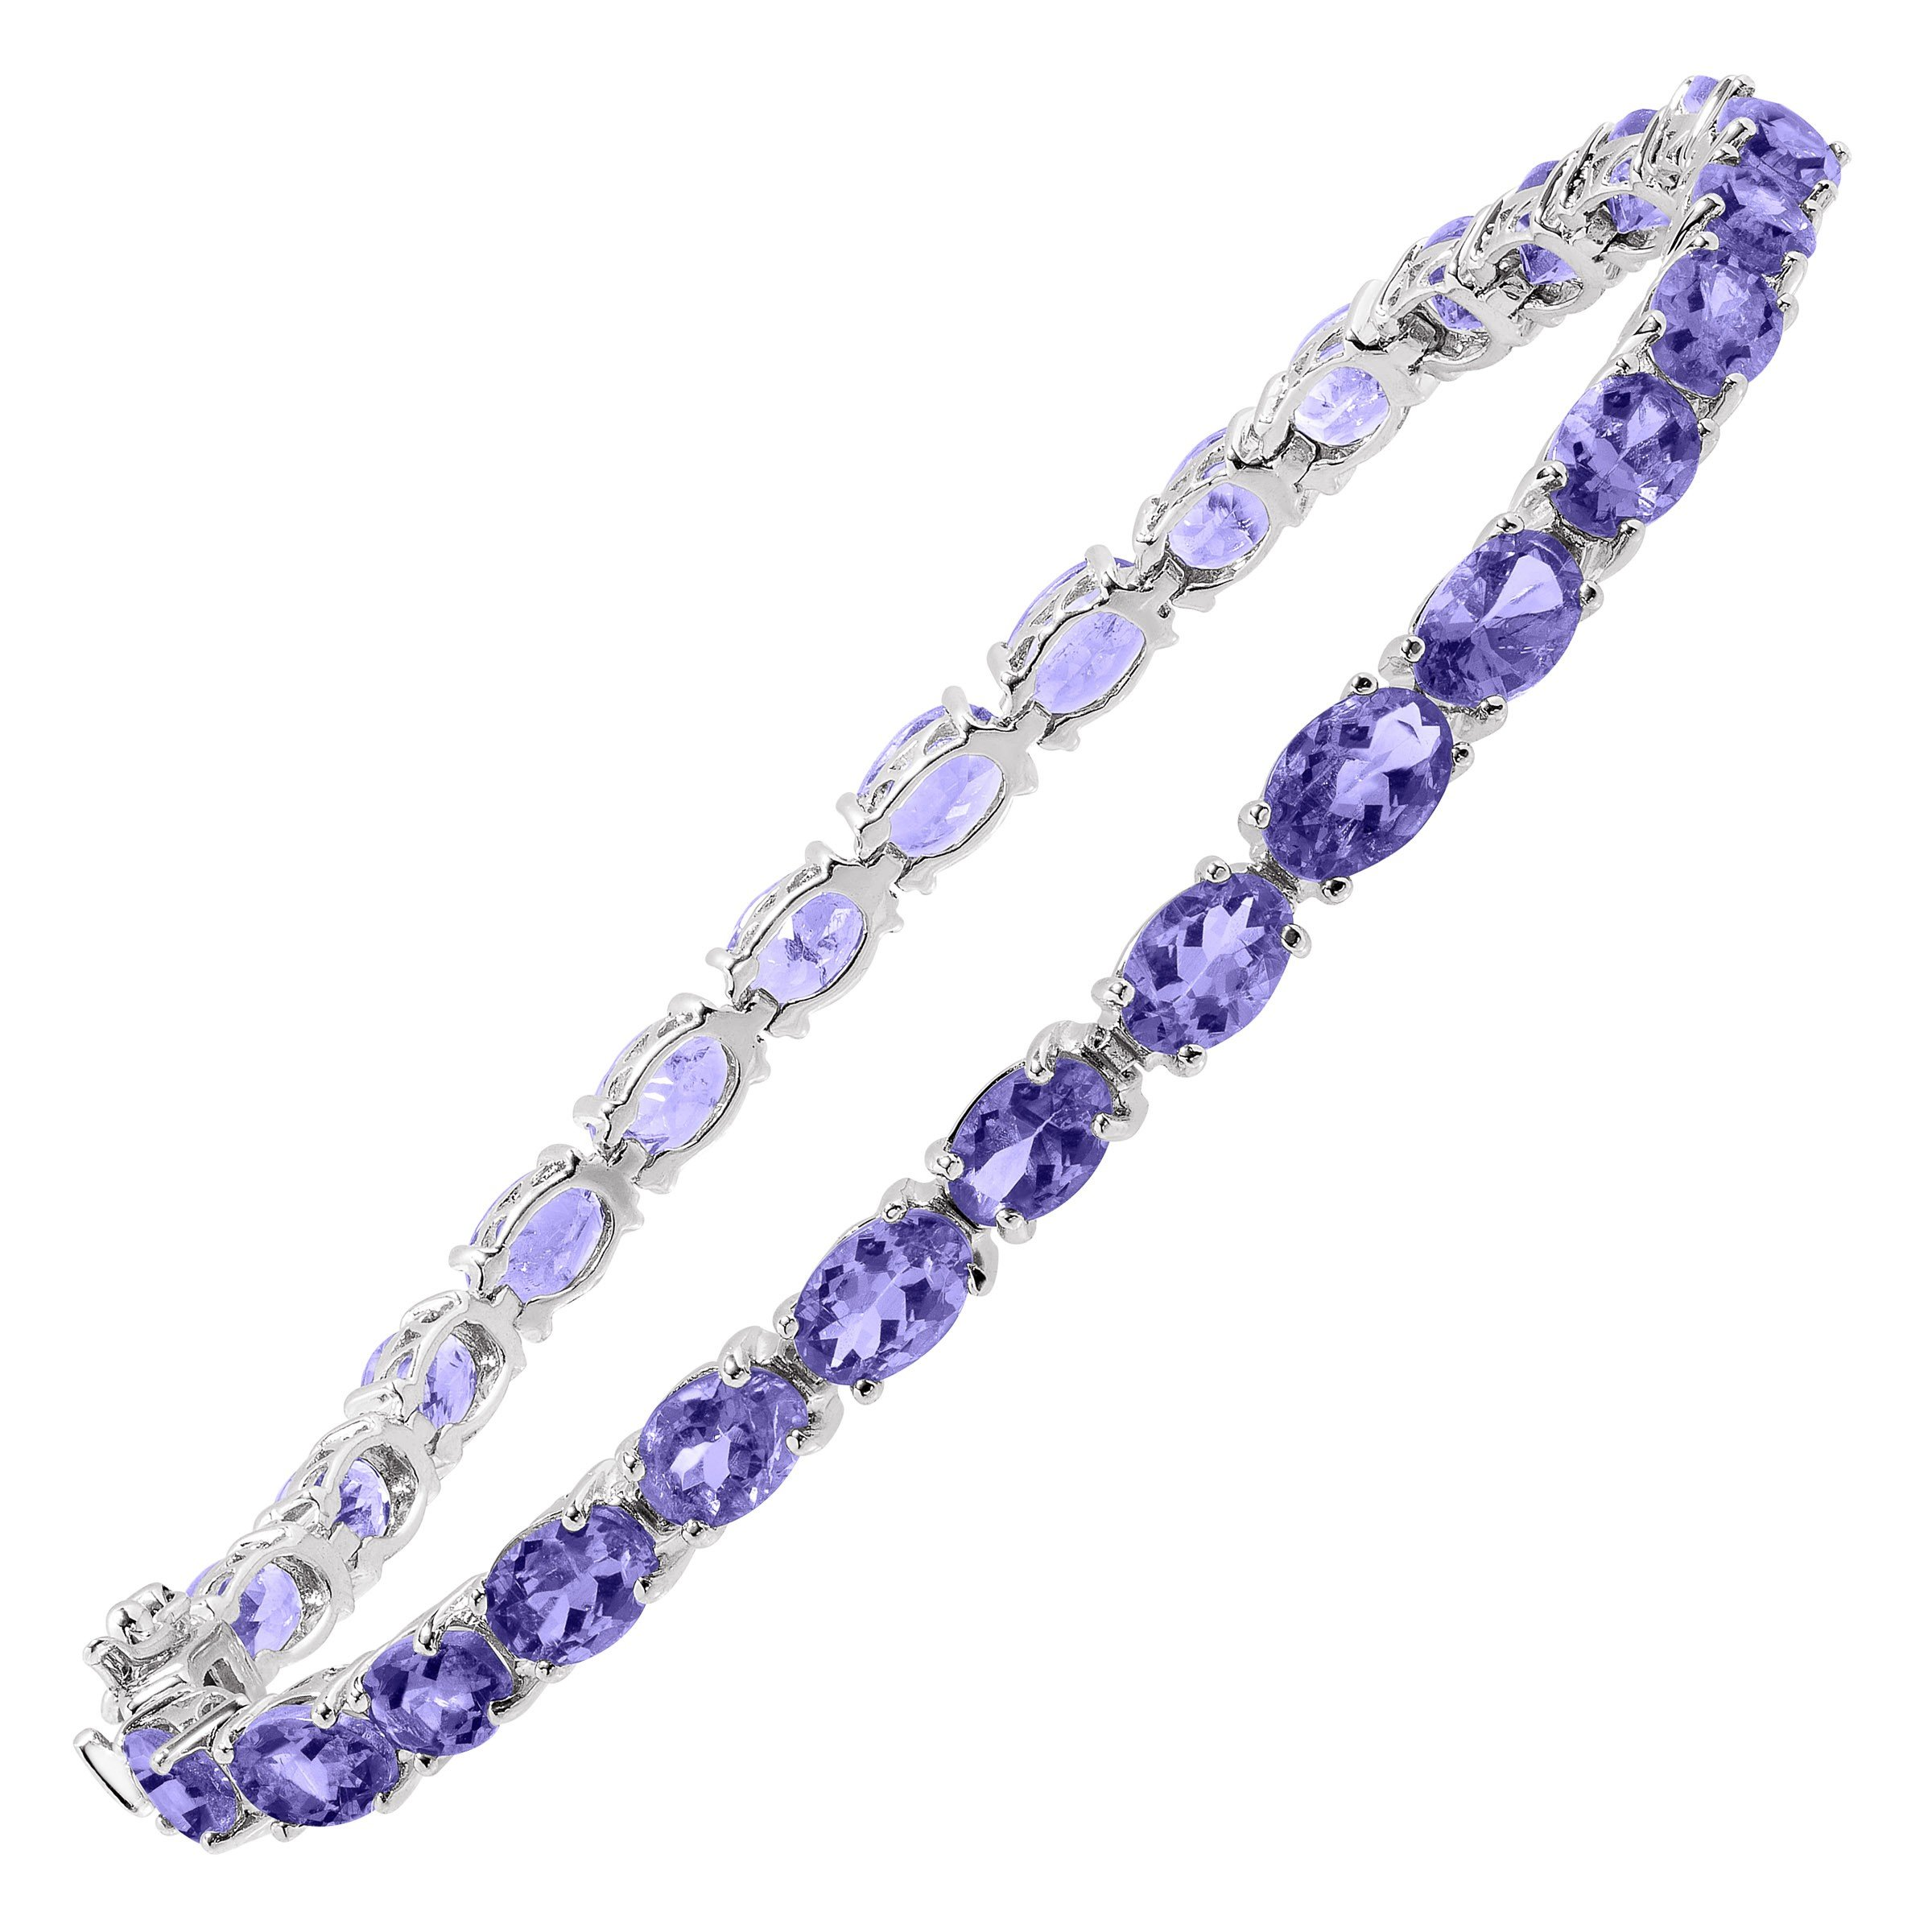 13 ct Natural Tanzanite Tennis Bracelet in Sterling Silver, 7.5'' by Finecraft